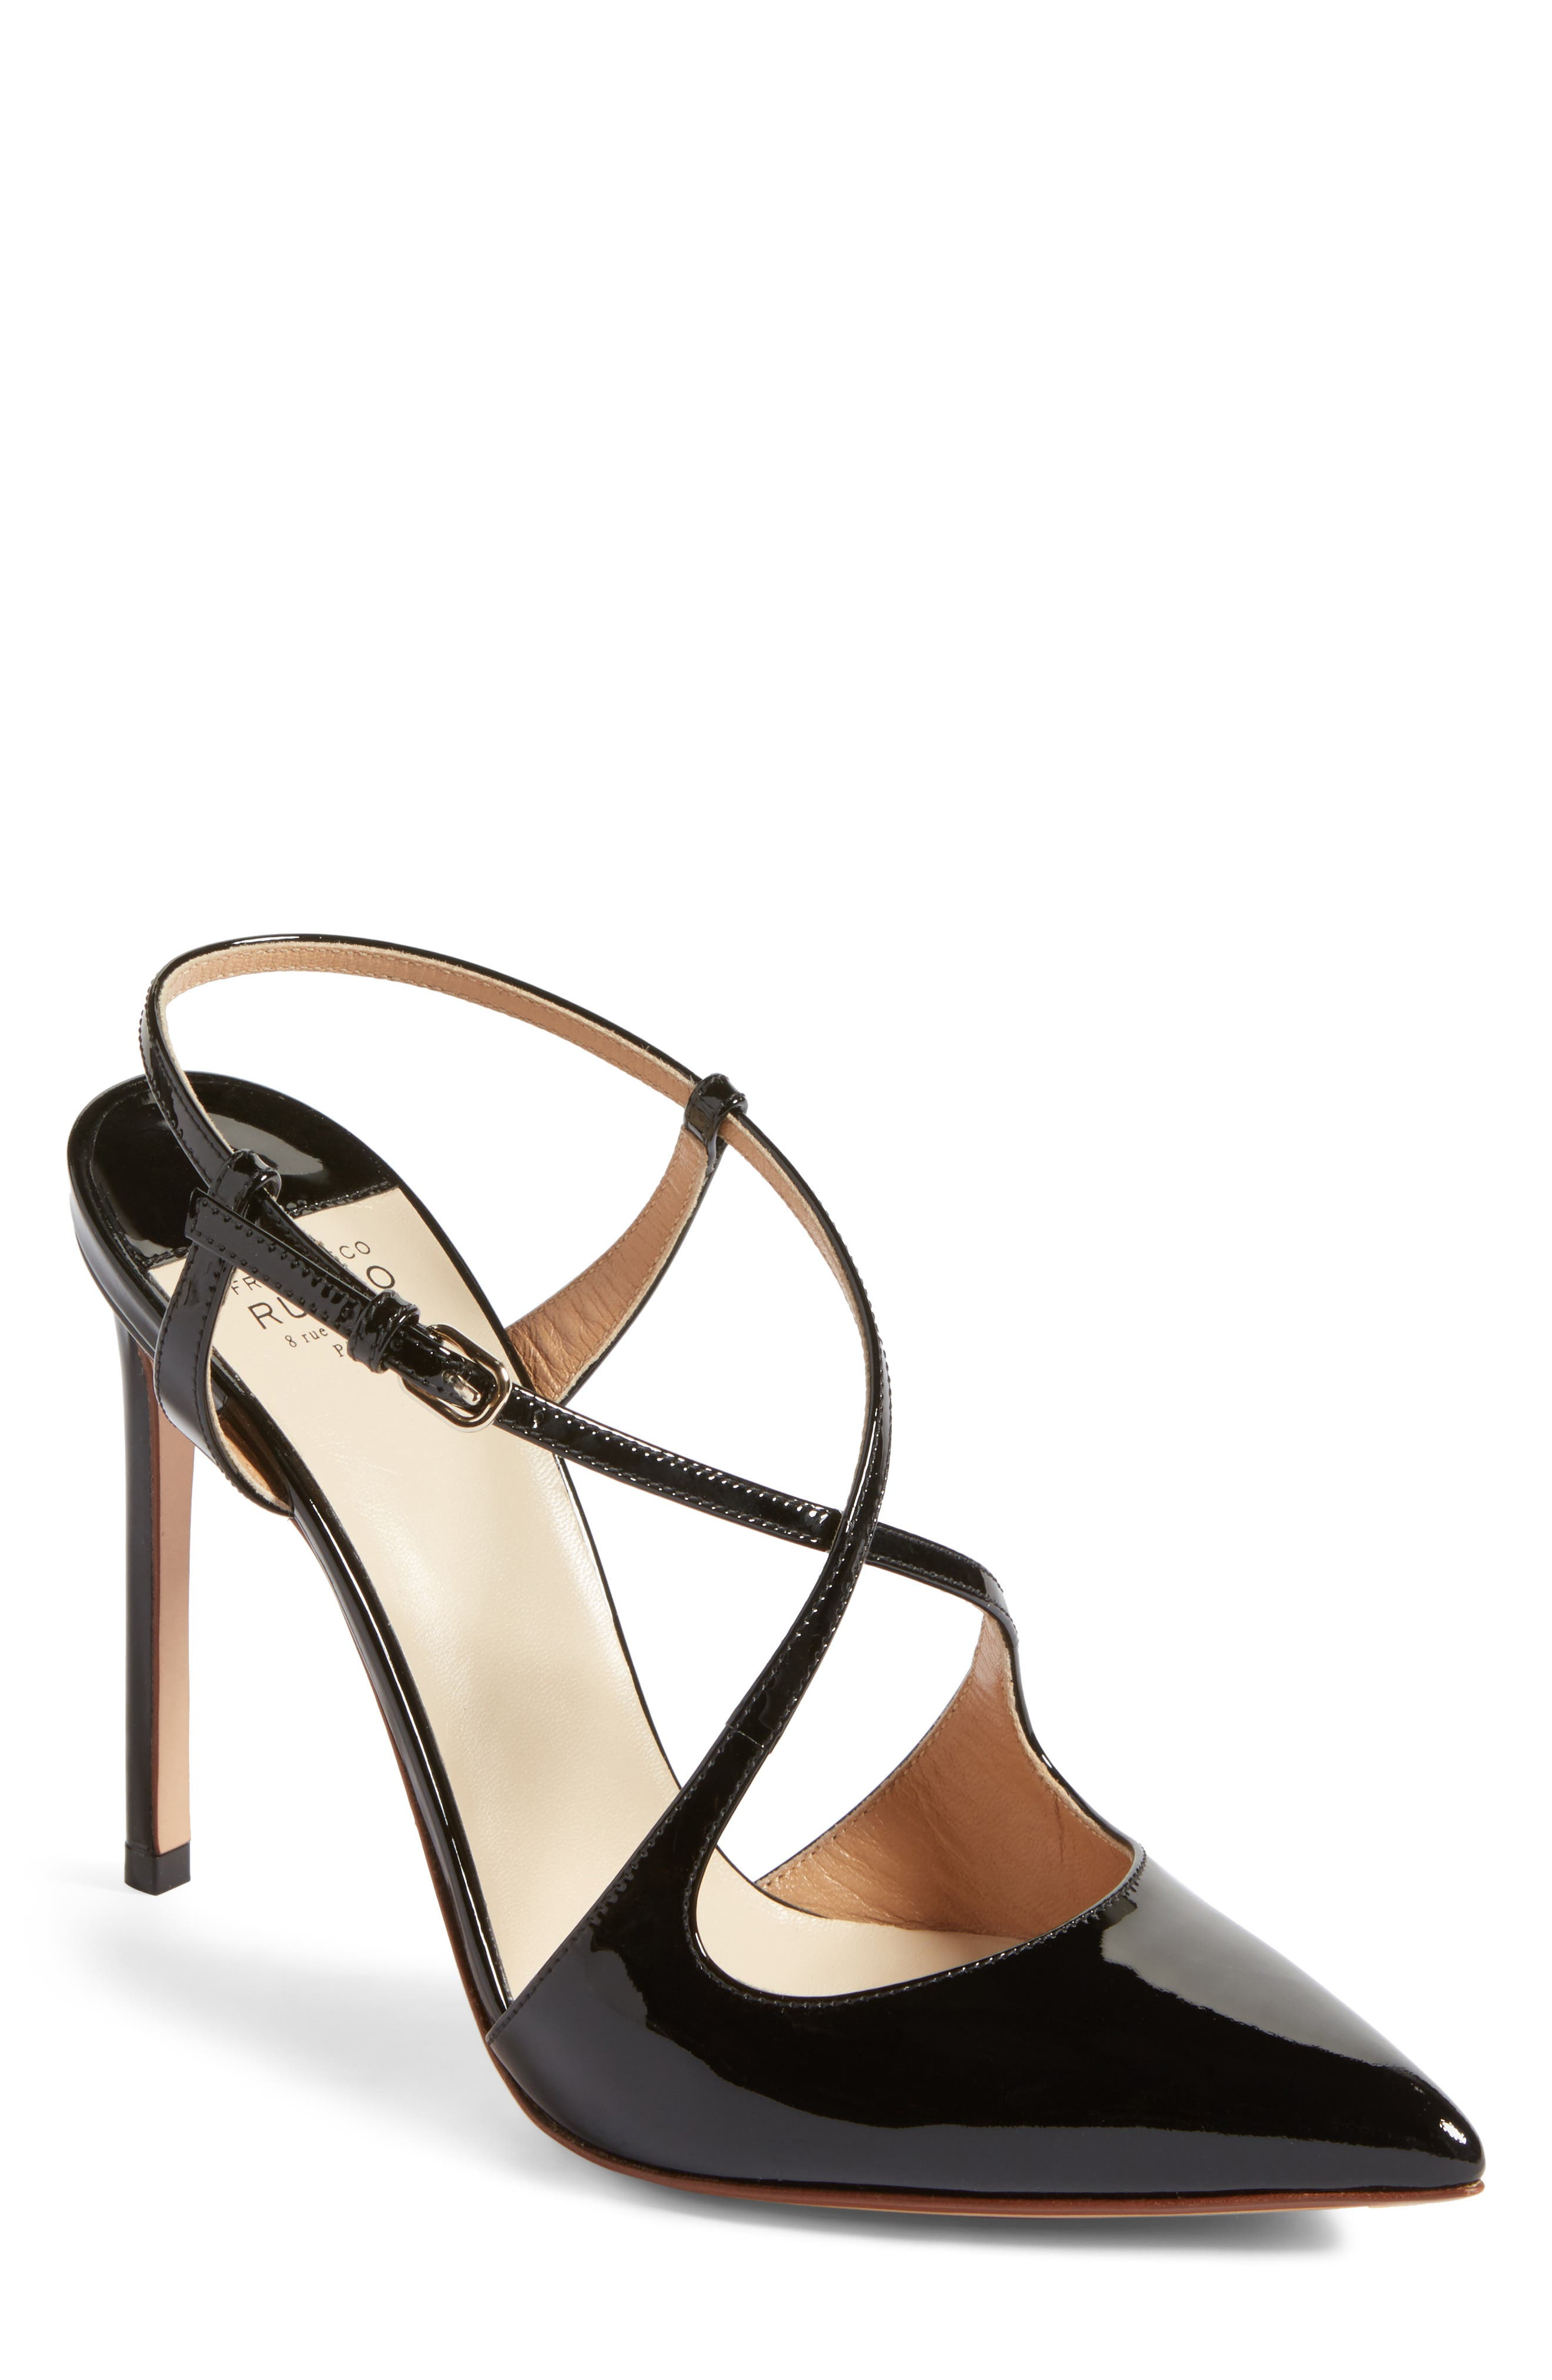 Alternate Image 1 Selected - Francesco Russo Criss Cross Pump (Women)